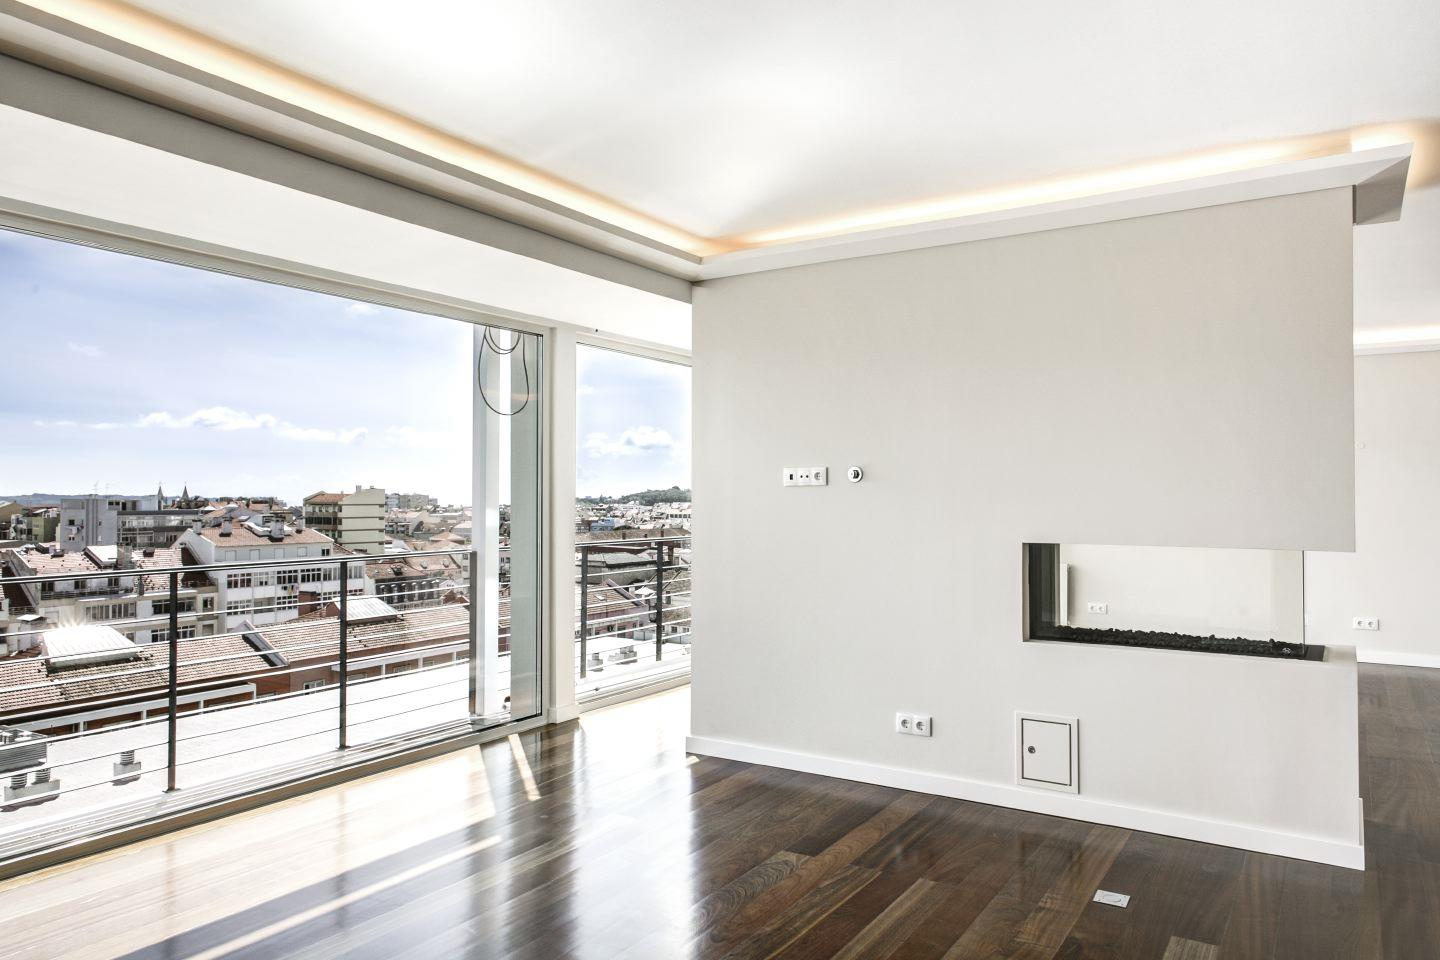 Appartement pour l Vente à Flat, 3 bedrooms, for Sale Lisboa, Lisbonne, Portugal